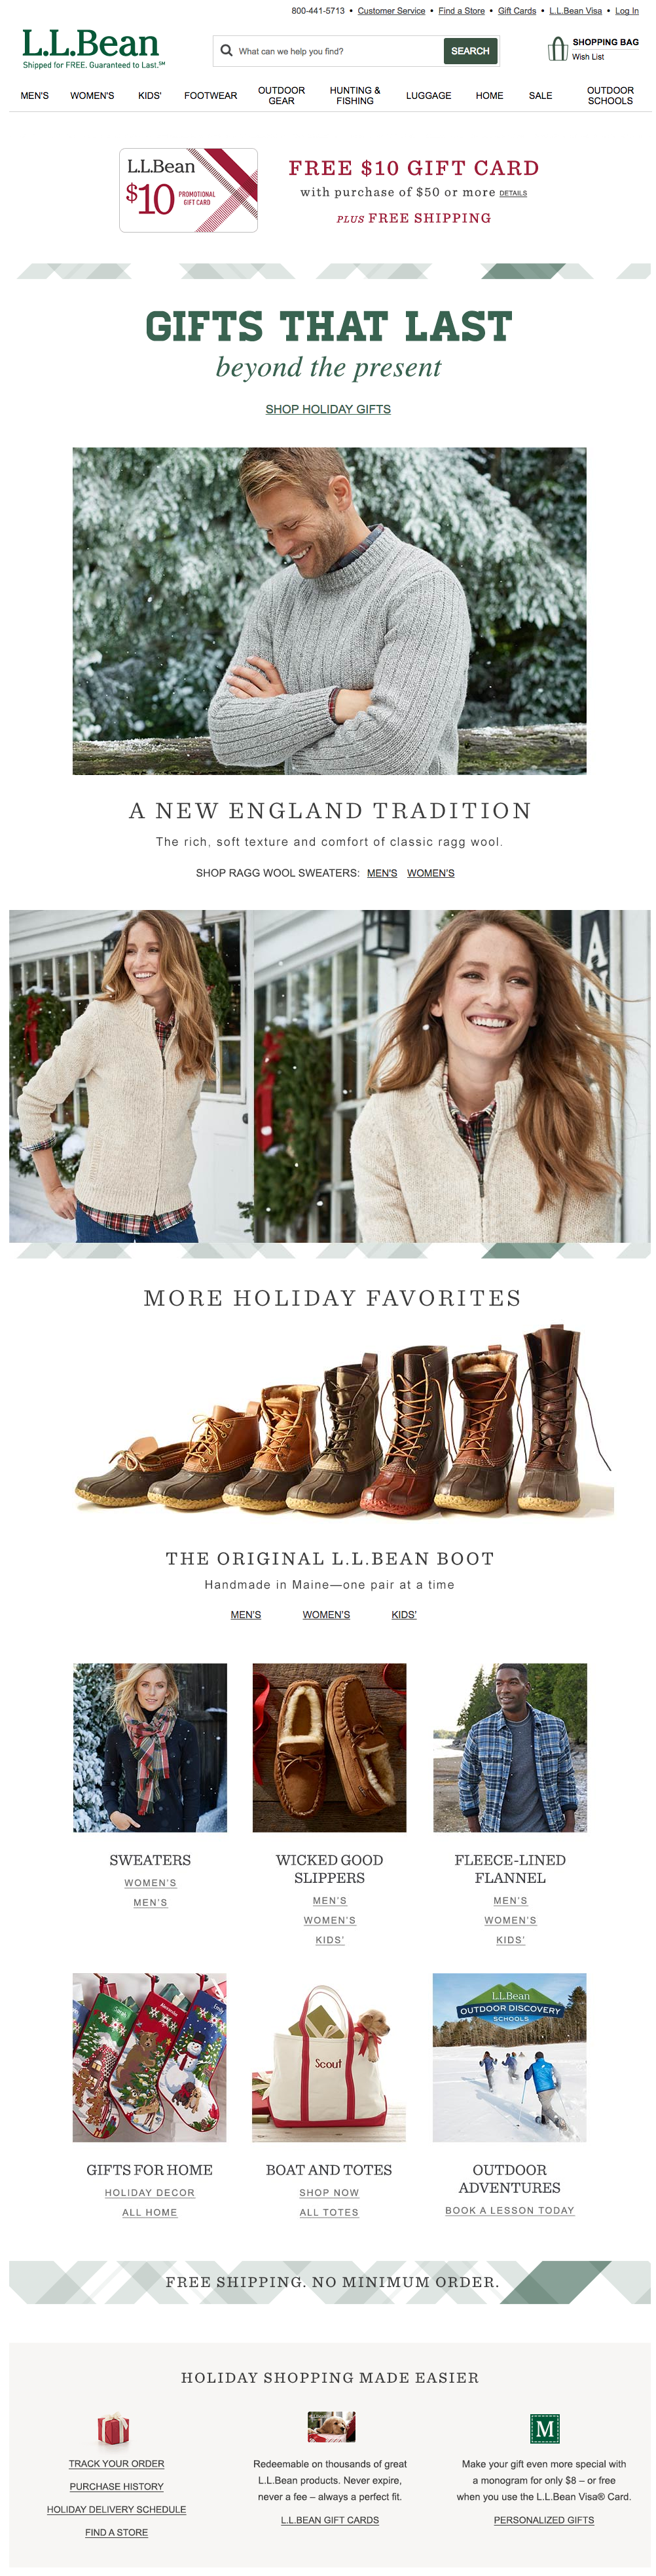 llbean holiday.png